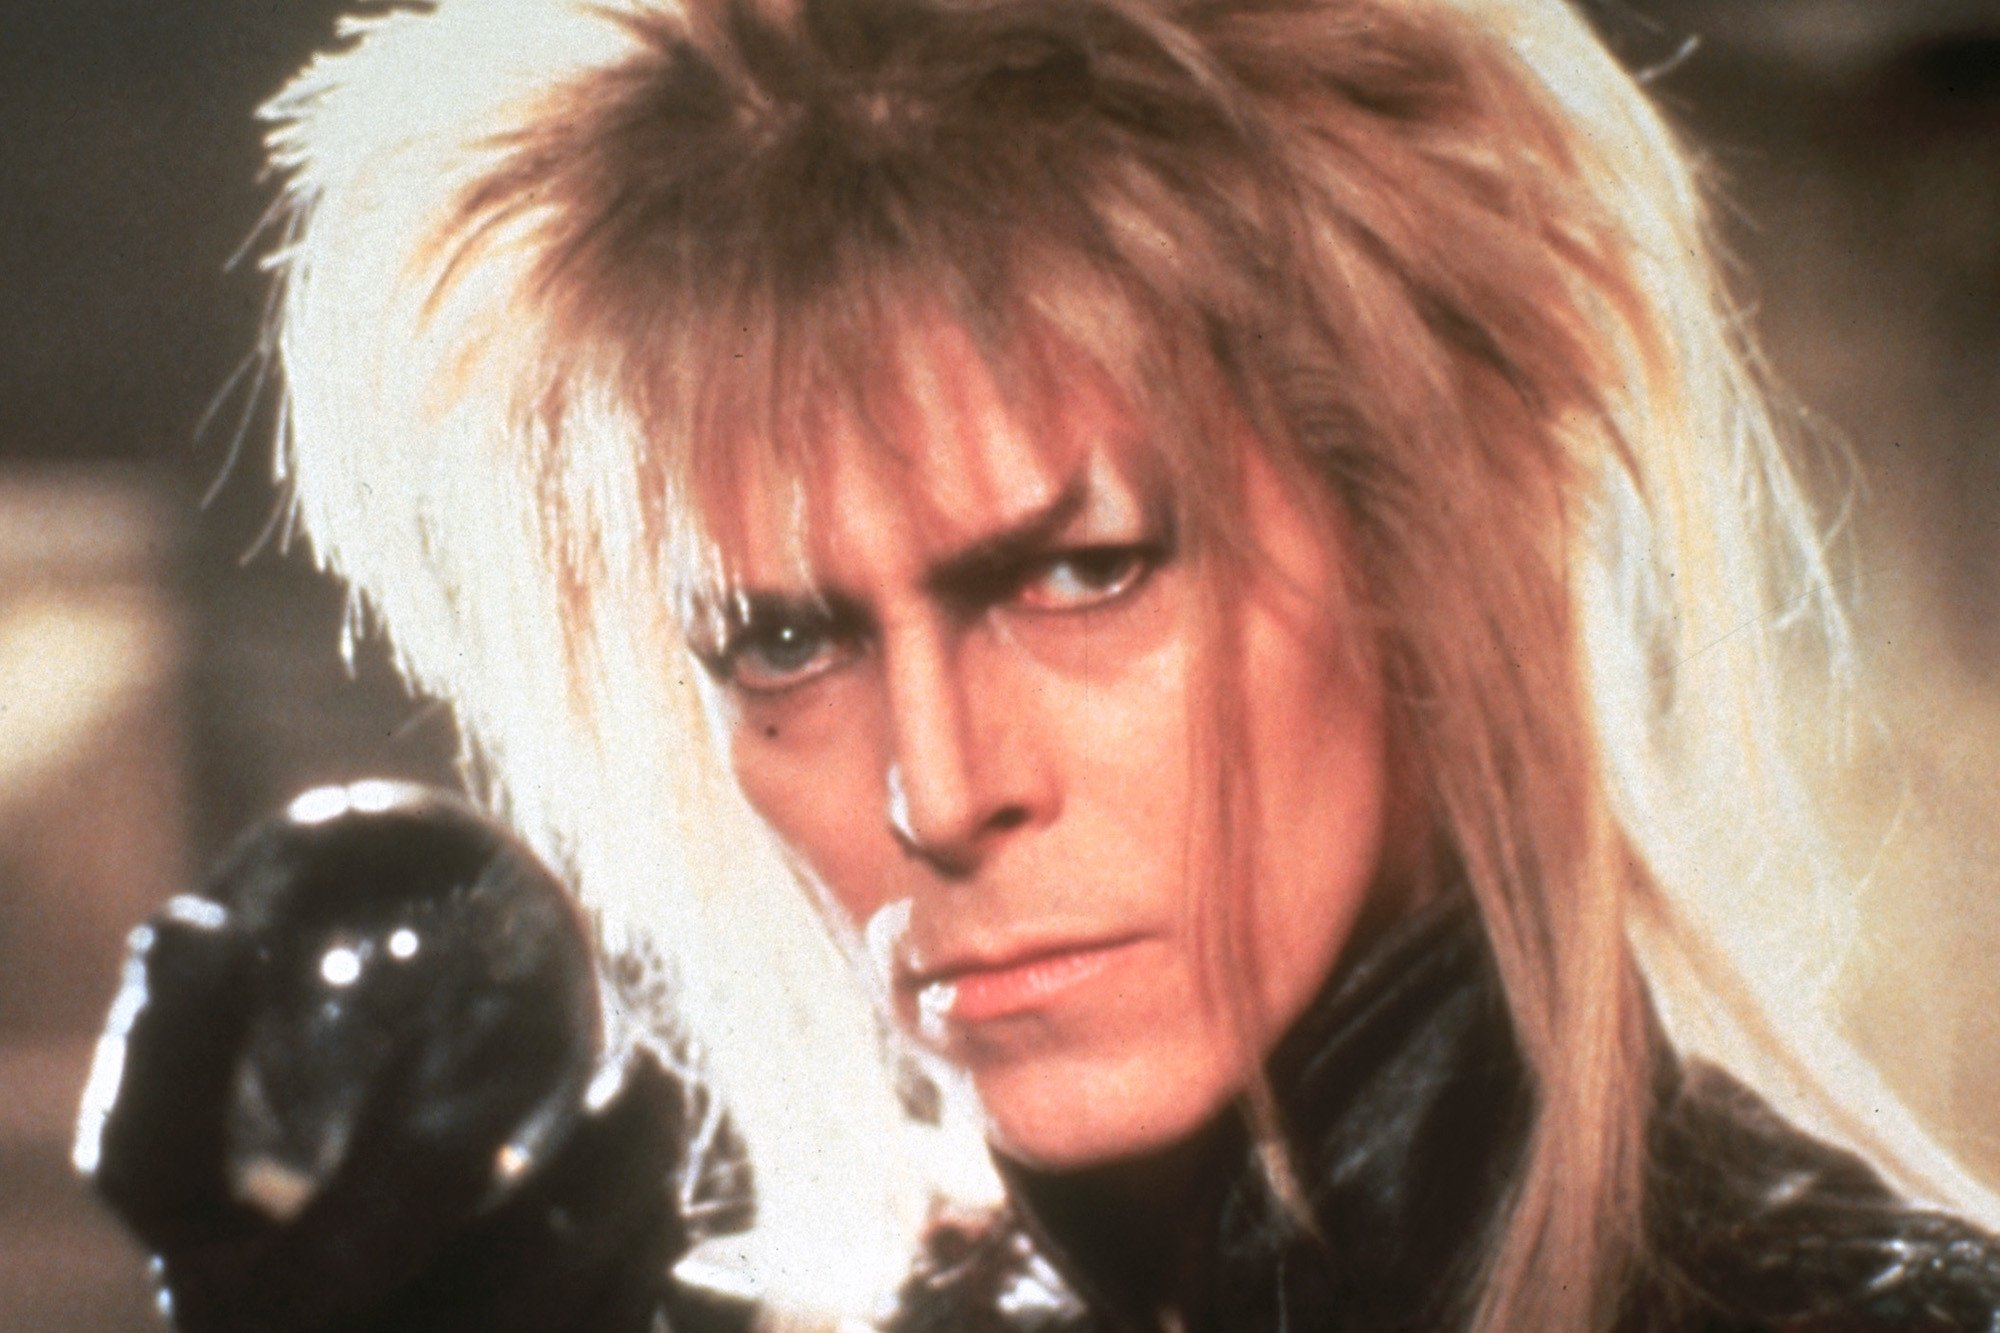 Behind-the-scenes secrets from Bowie's cult classic 'Labyrinth'